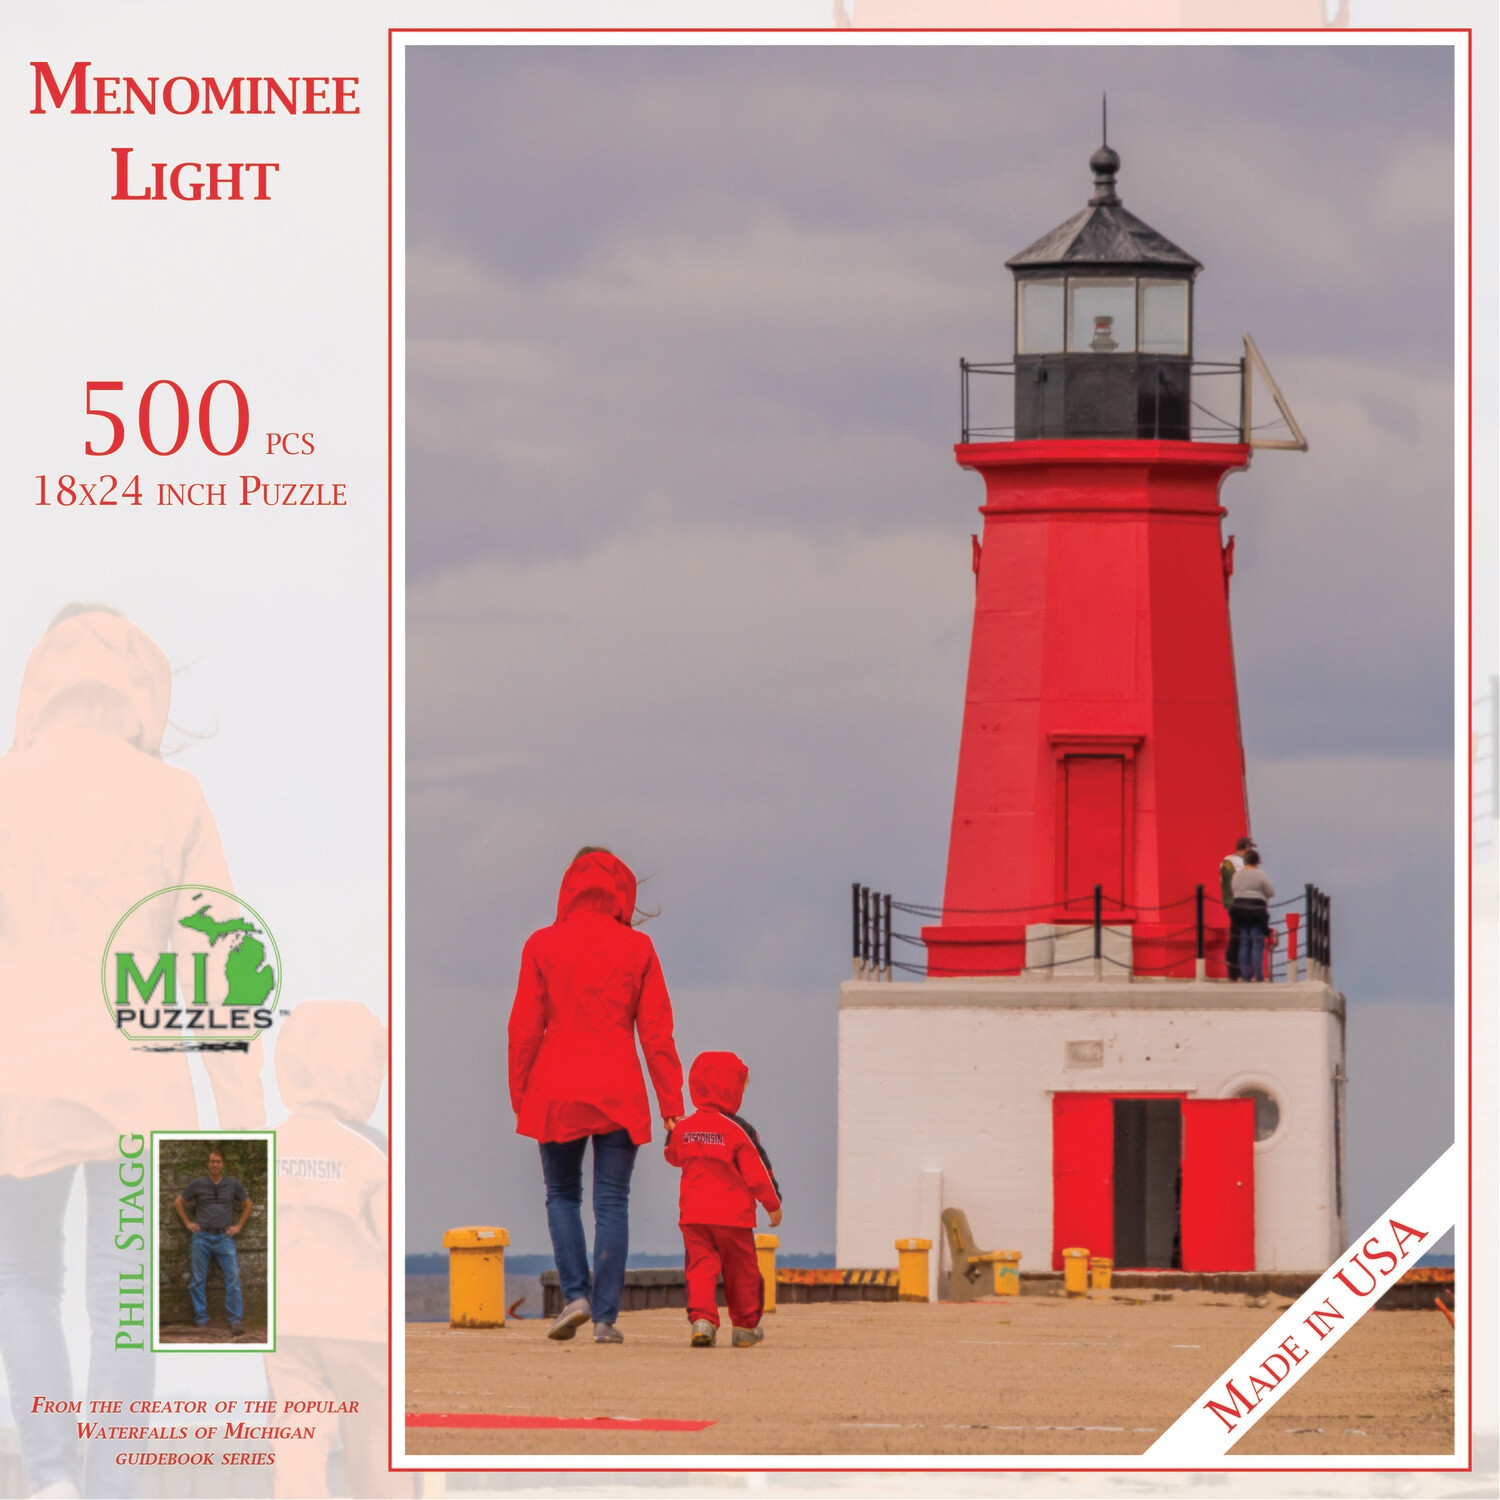 Menominee Light